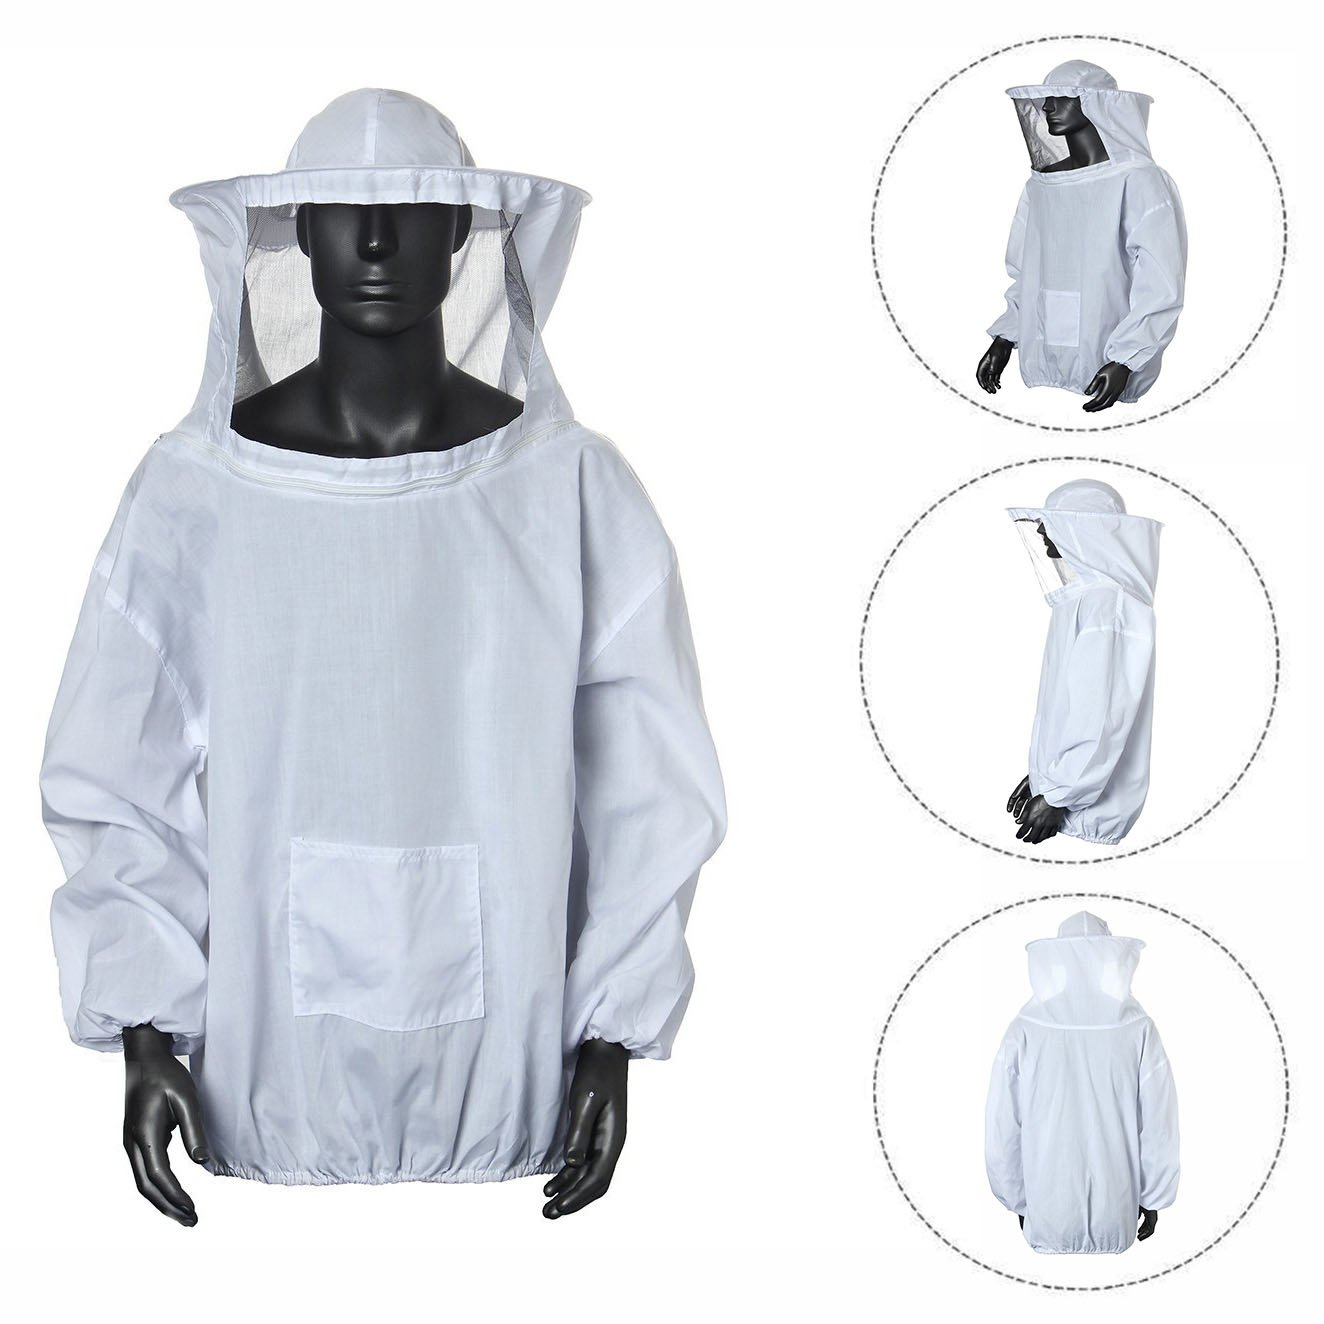 Cisixin Protective Bee Keeping Suit, Jacket, Pull Over, Smock with a Veil